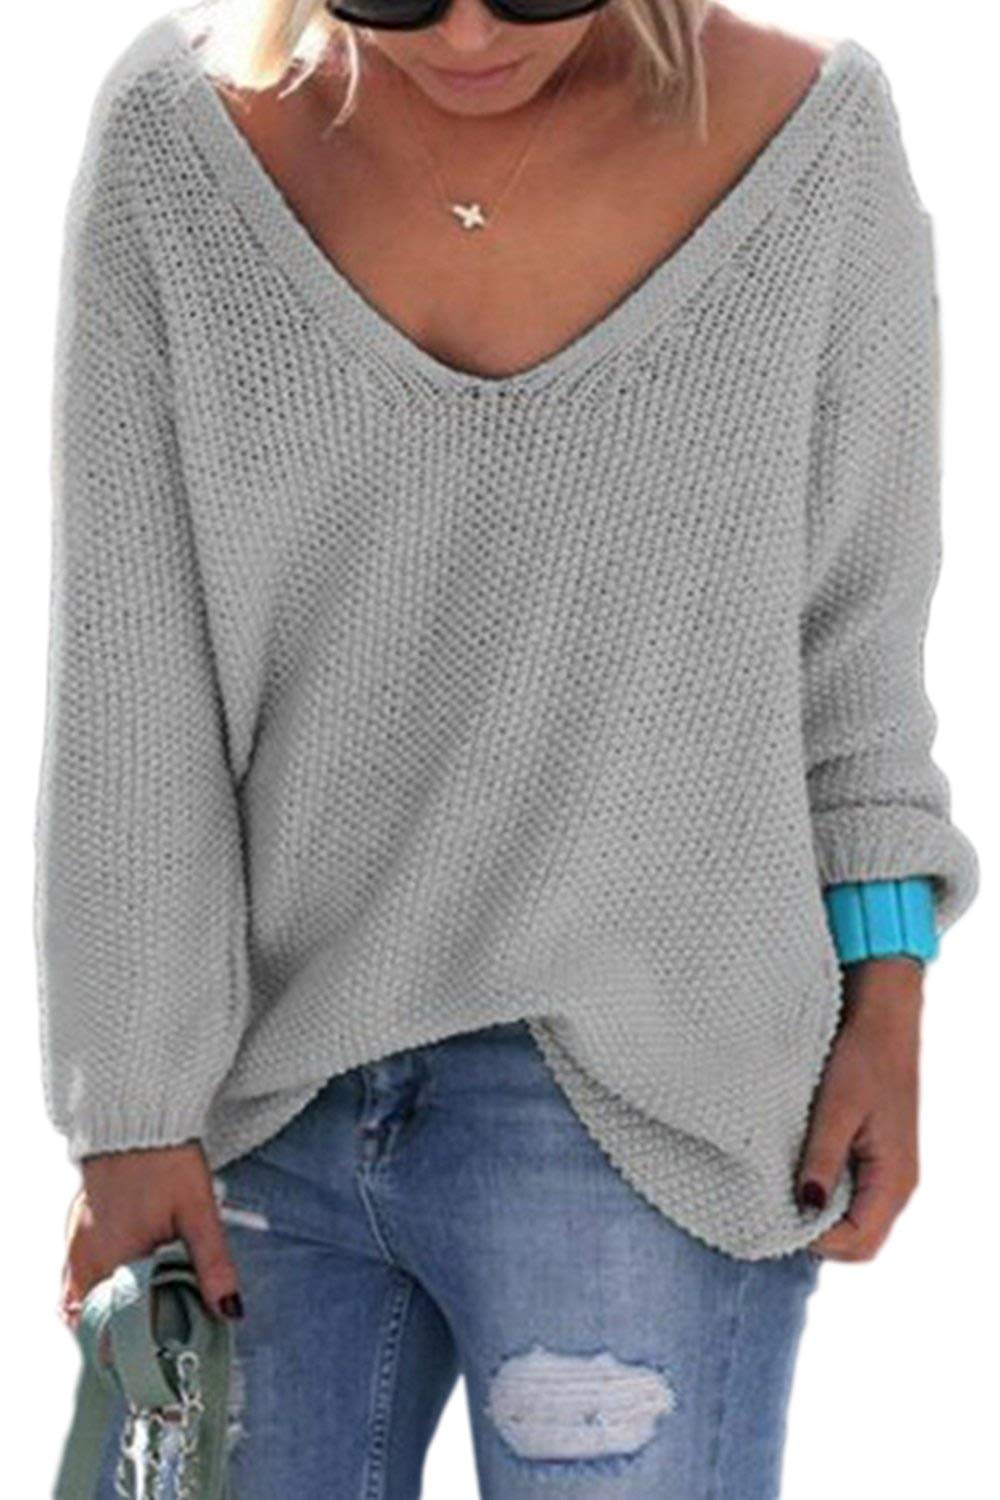 fe2f47618c4fe Get Quotations · Women Casual Pullover Deep V Neck Baggy Knit Cardigan  Sweater Tops